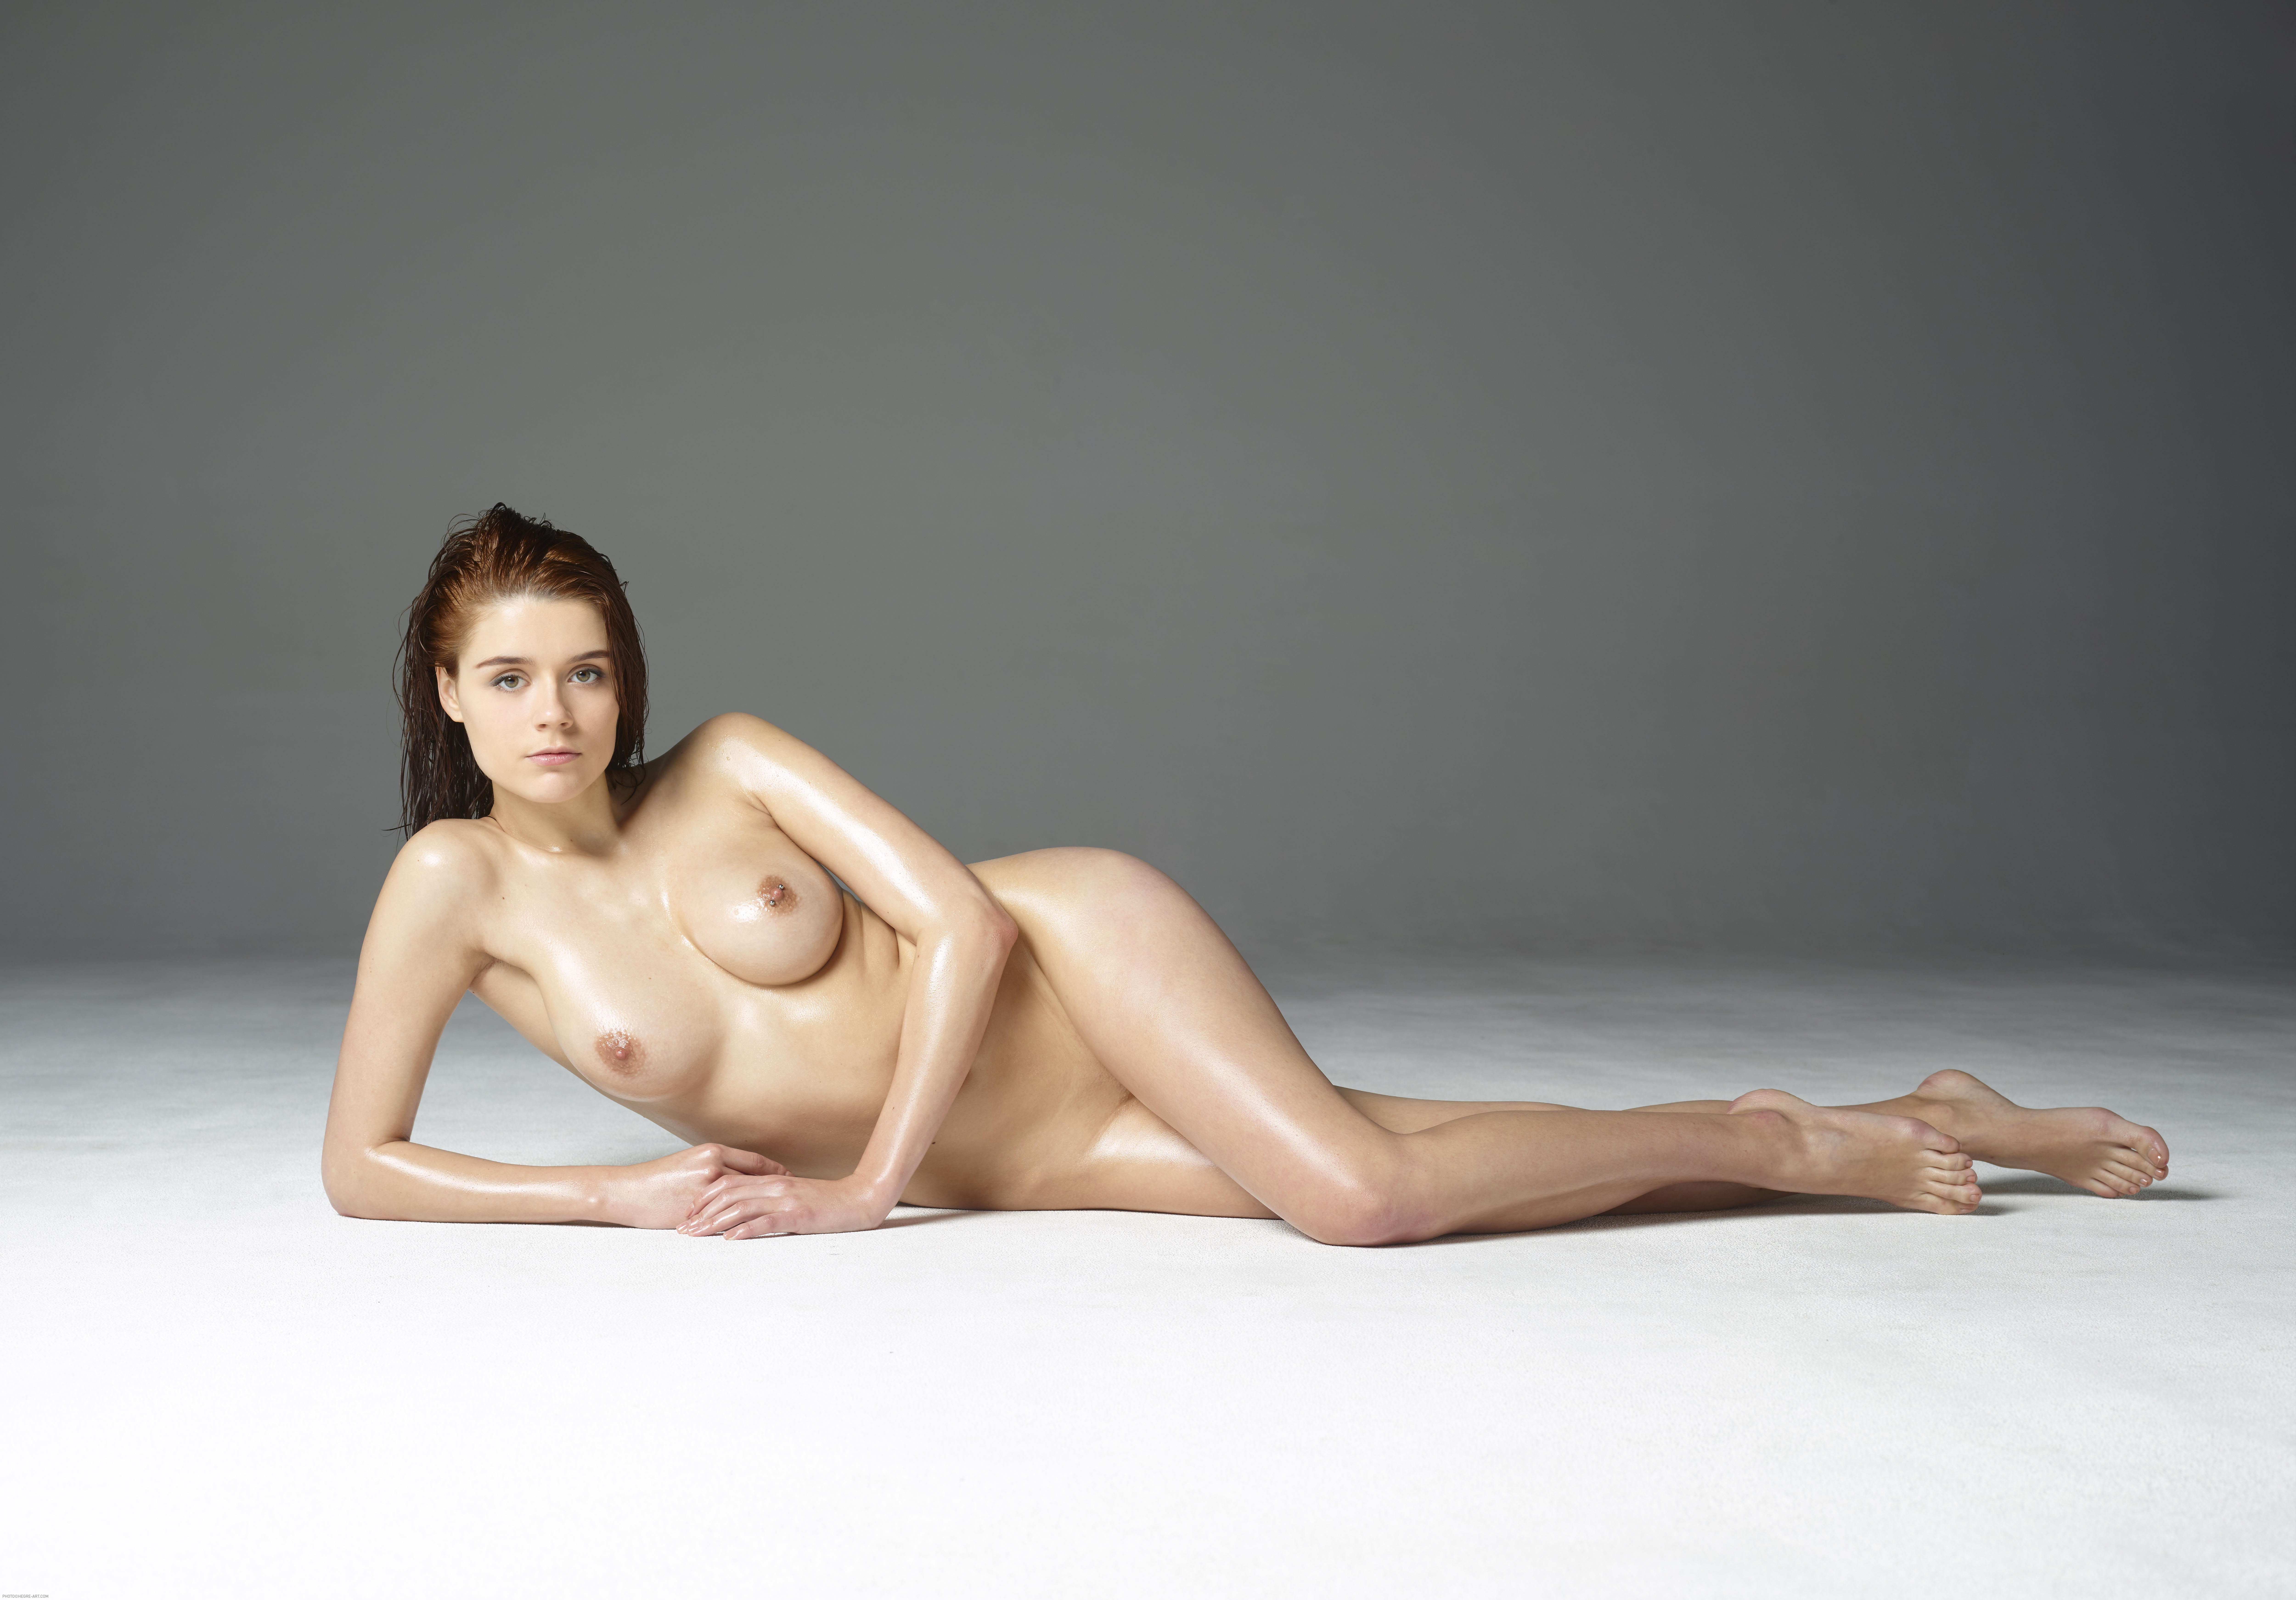 Nude model first free